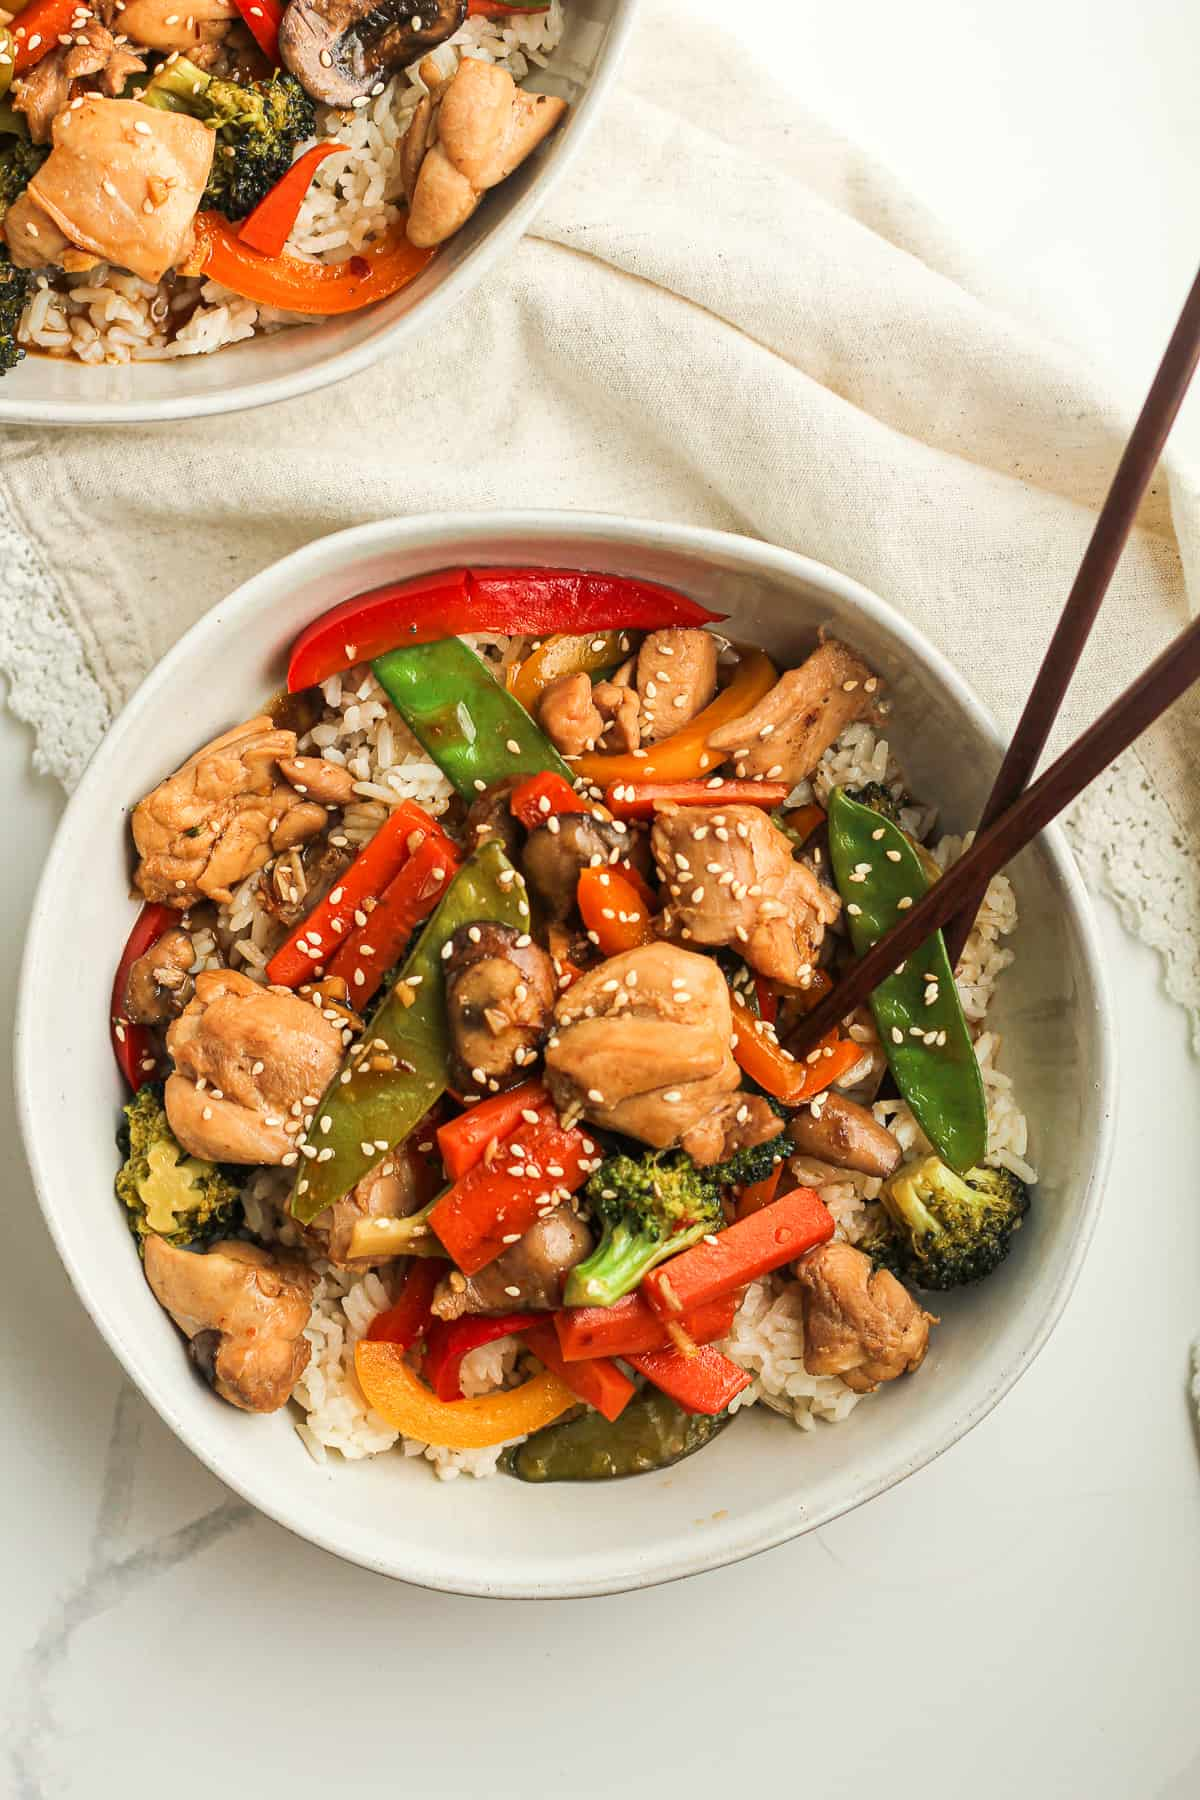 Two bowls of chicken vegetable stir fry.